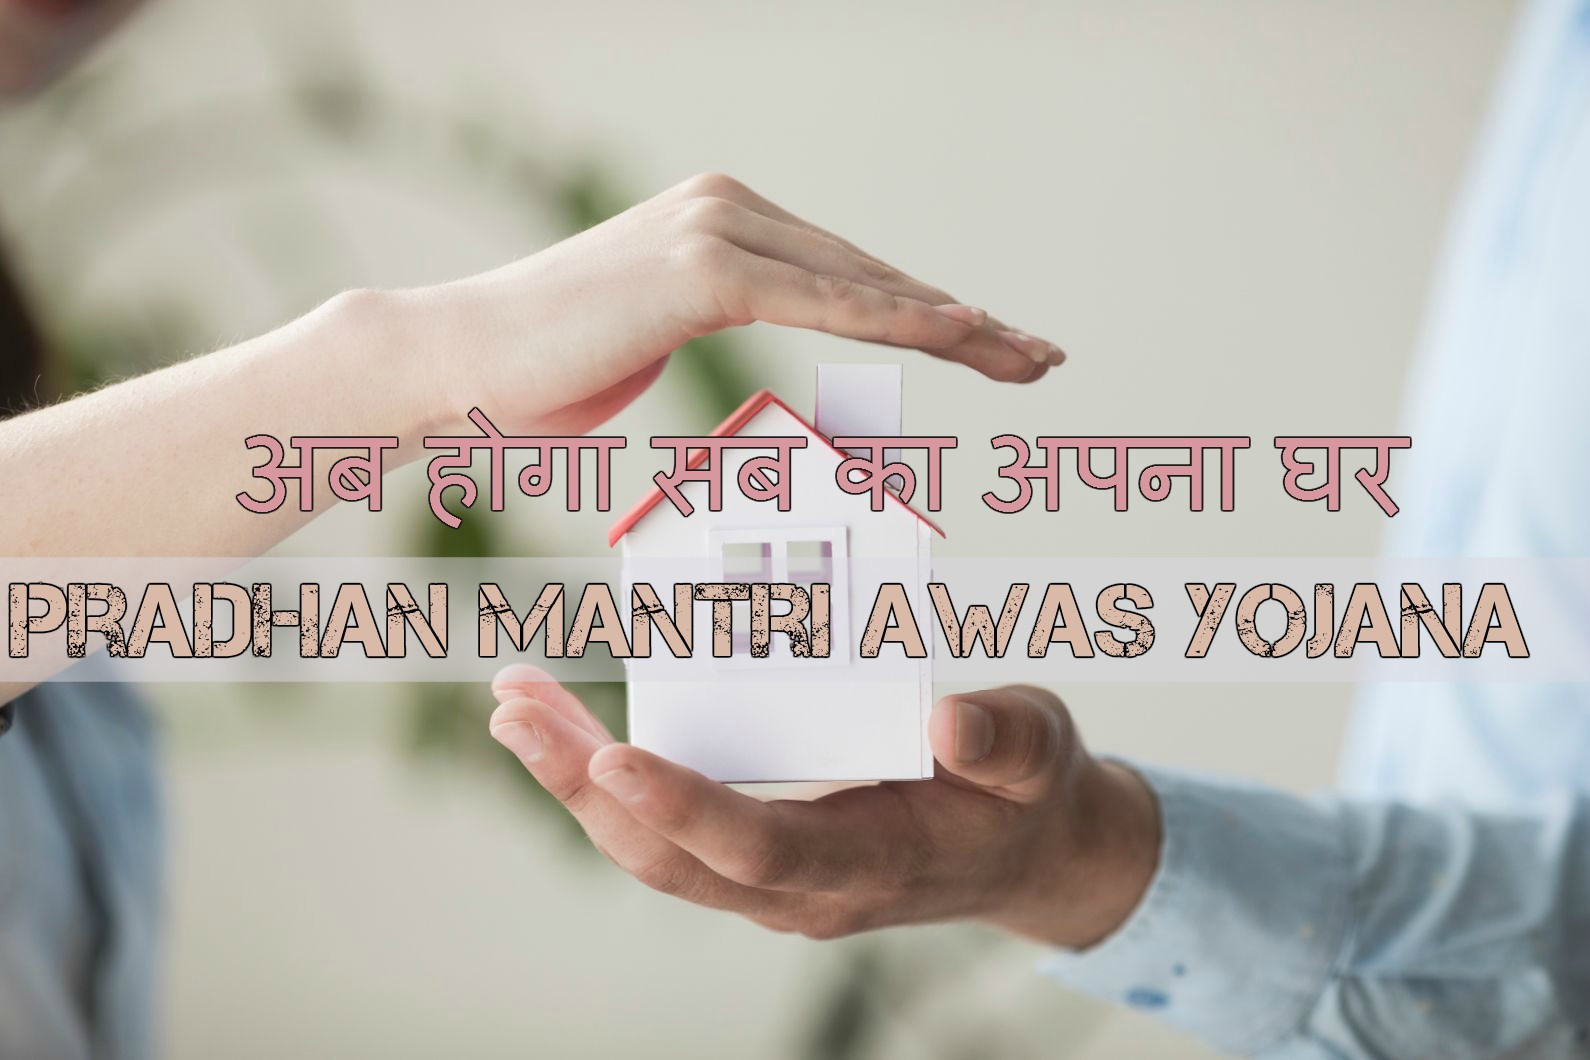 pradhan mantri awas yojana hindi